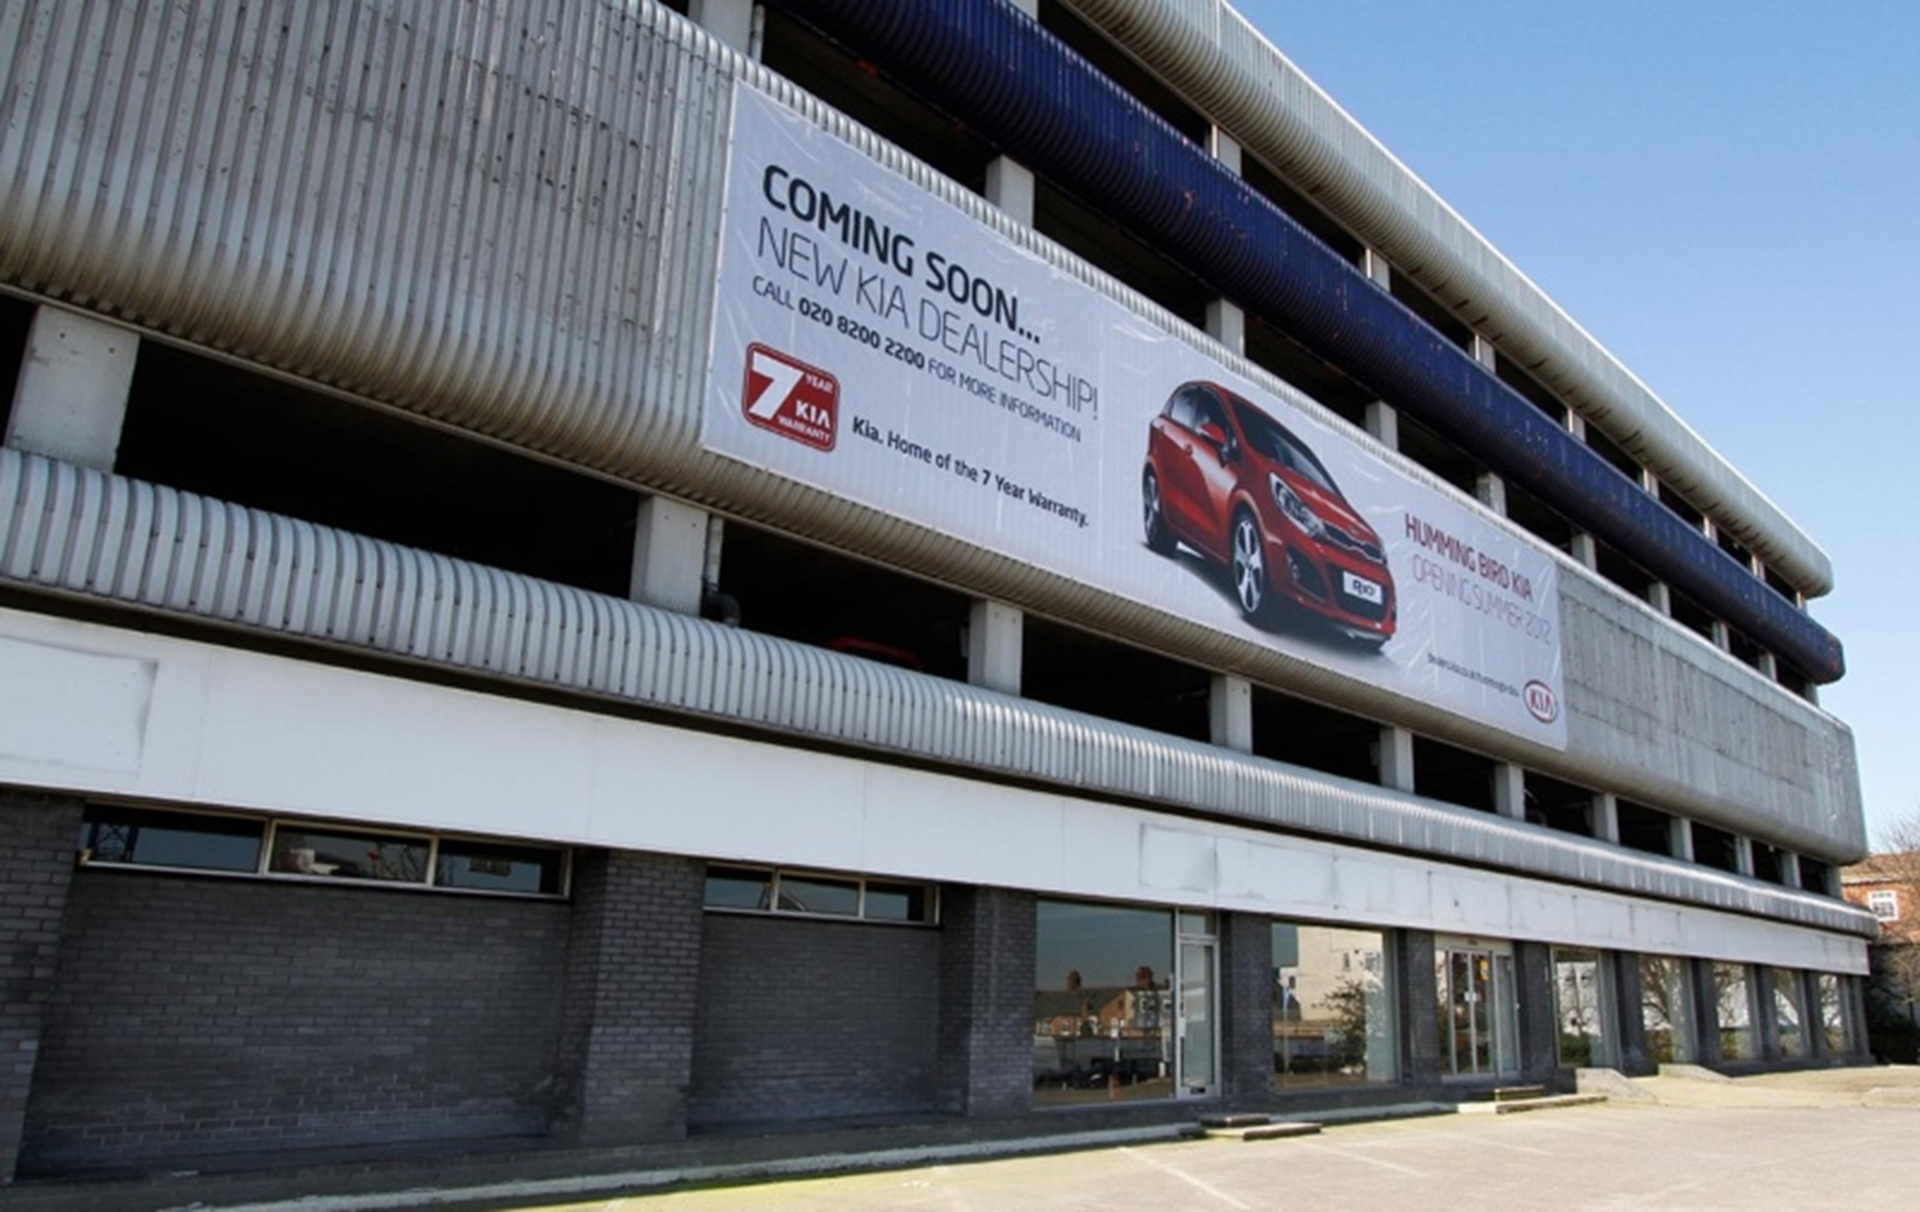 Kia Starts Work On A Major New North London Dealership In A Car Park